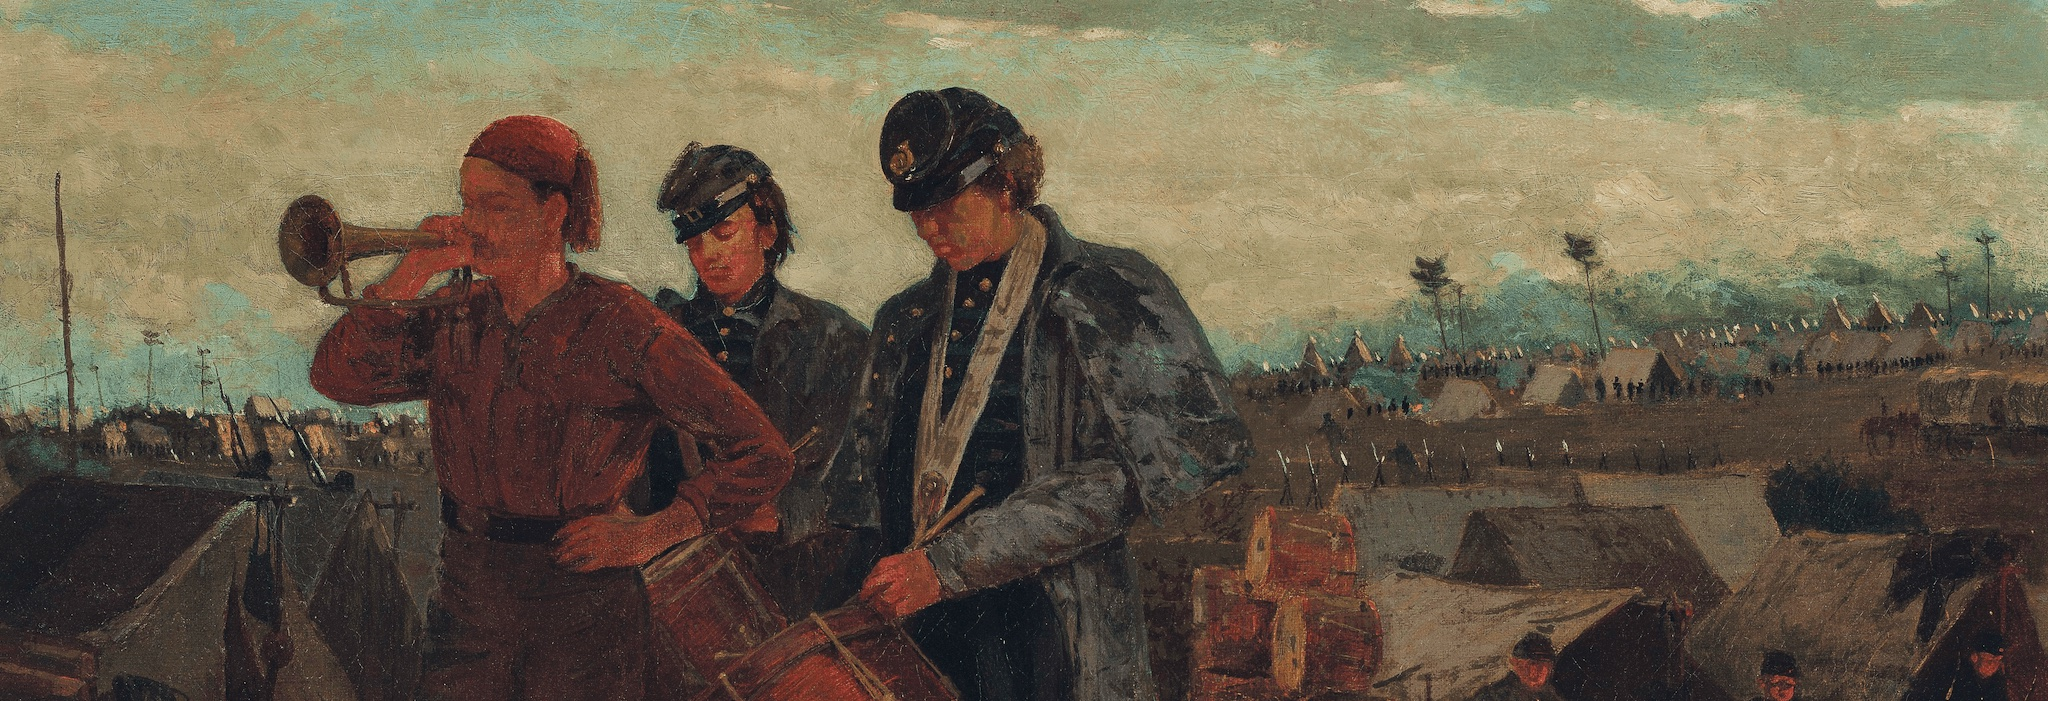 Detail of Union troops playing morning taps during the Civil War.